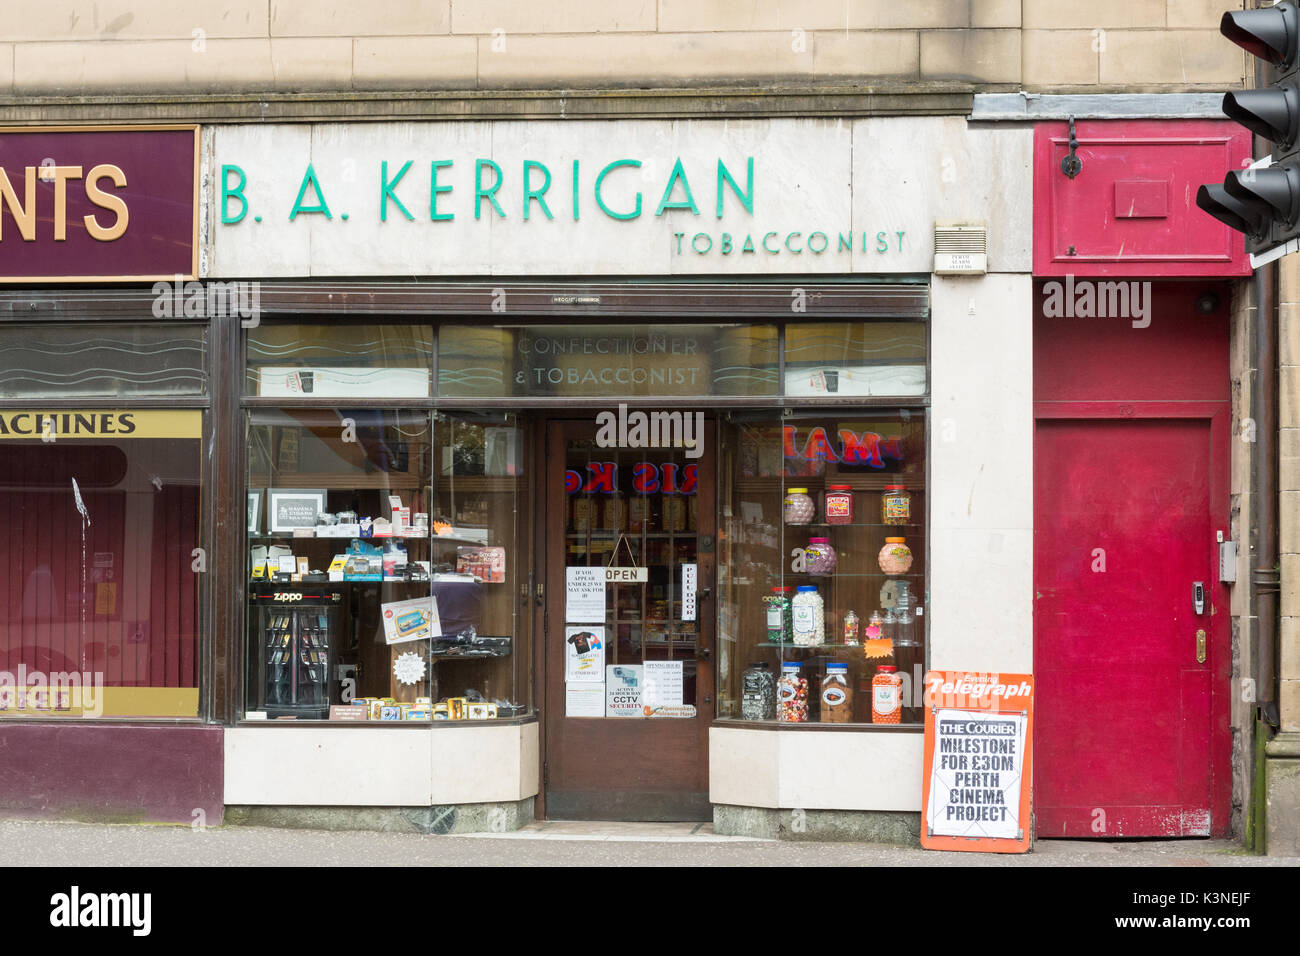 Tobacconist Shop - specialist tobacconists and sweet shop B A Kerrigan, Perth, Scotland, UK - Stock Image